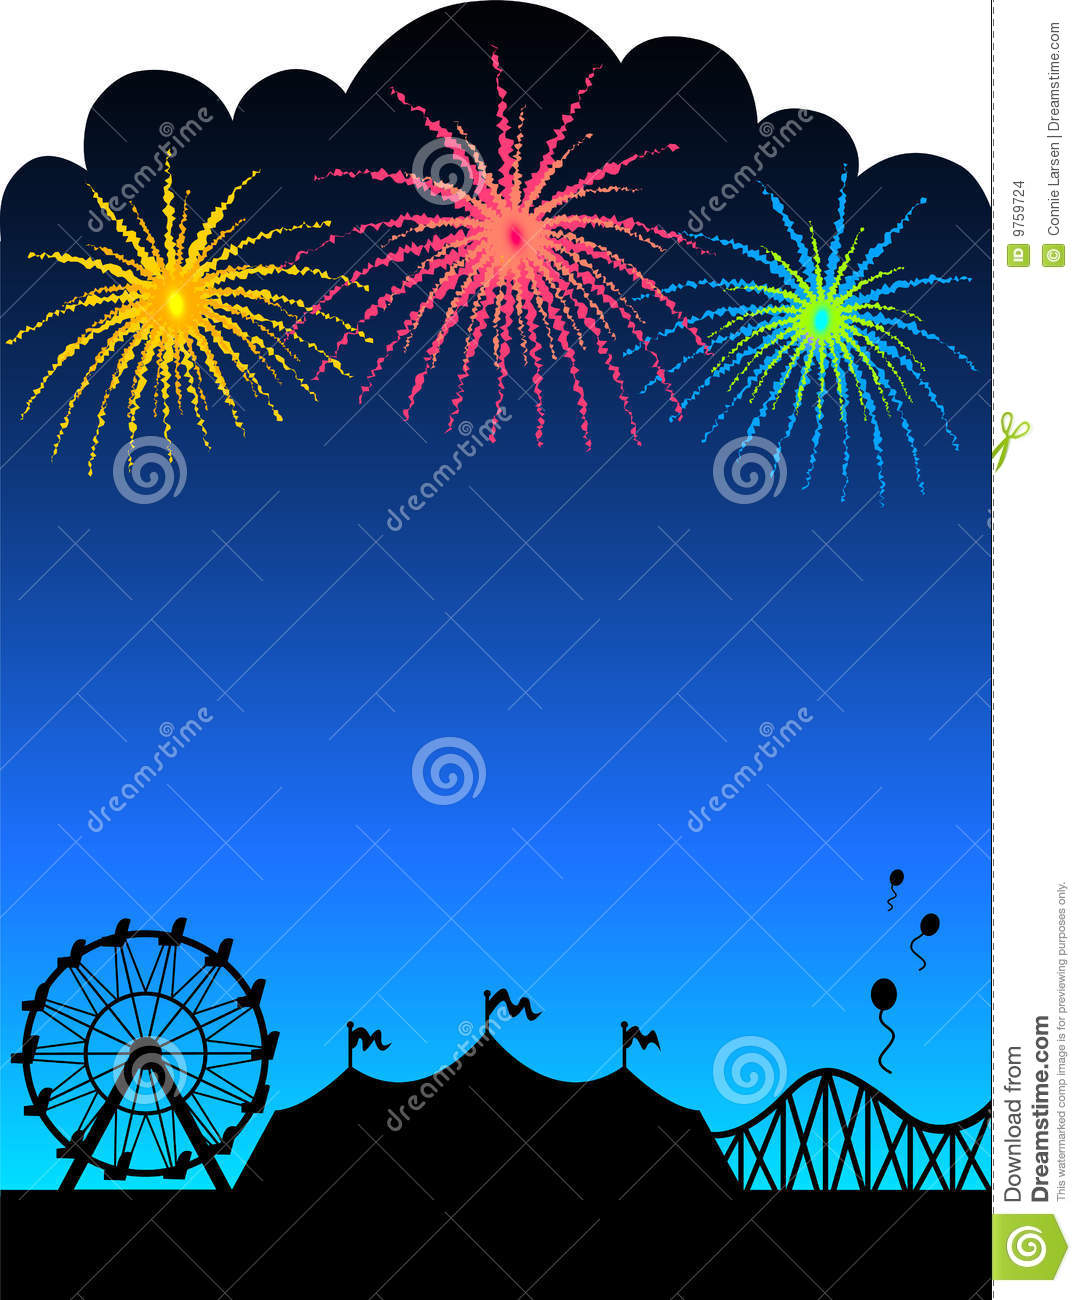 carnival fireworks background  eps stock vector image clipart of fireworks before it goes off clip art of fireworks exploding